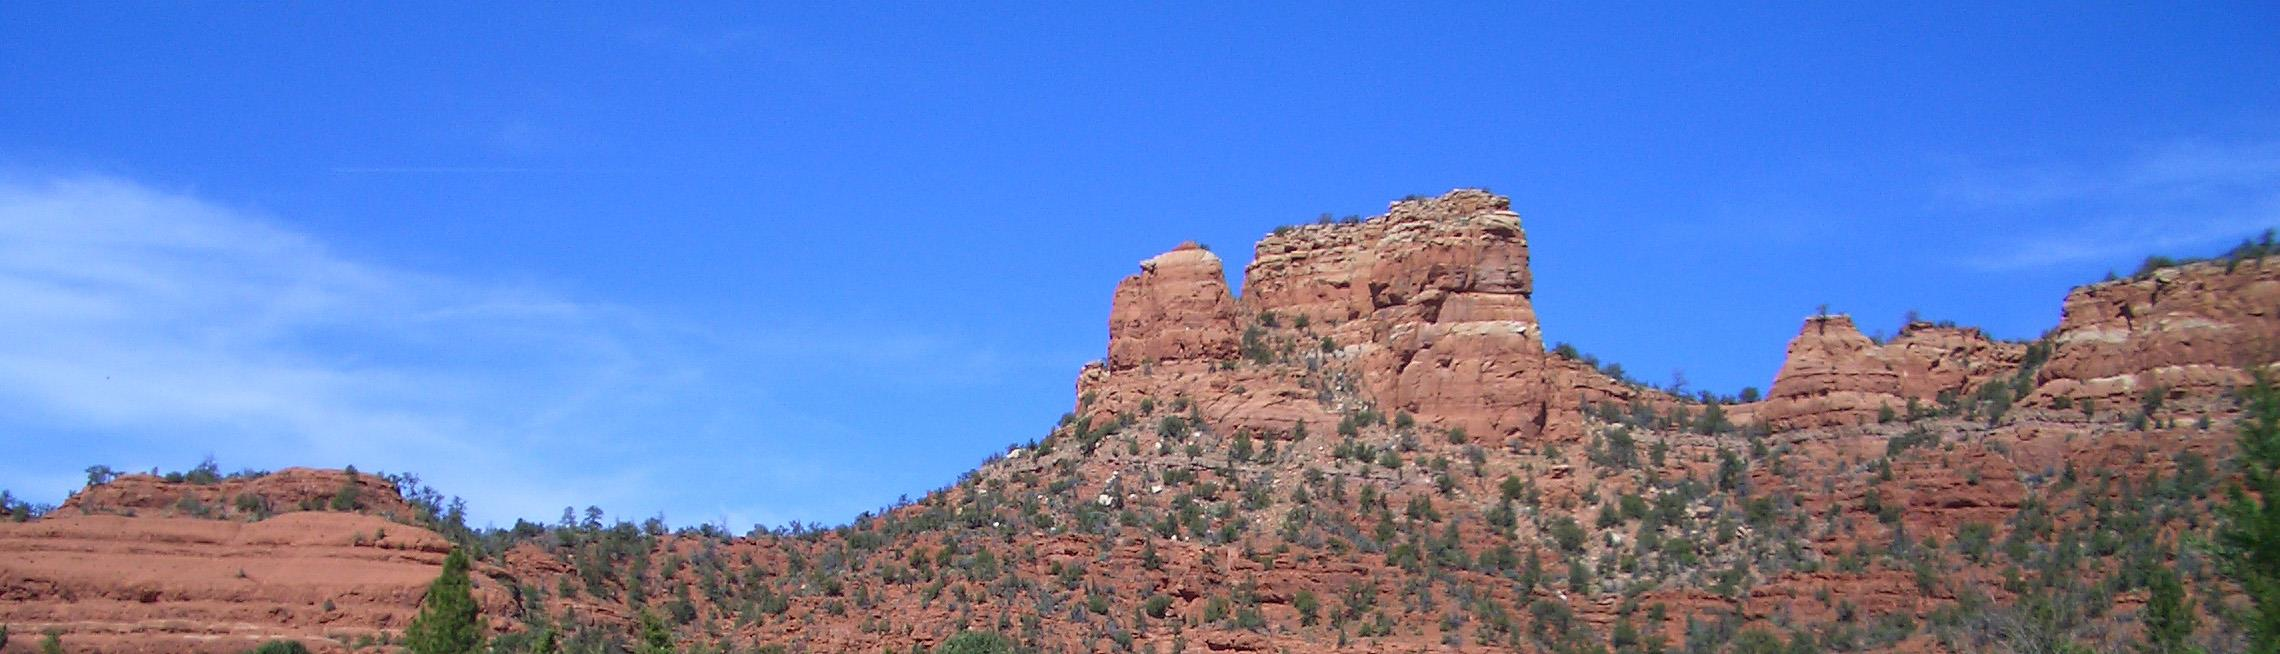 Sedona's Red Rocks are a striking red against the vivid blue Arizona skies.